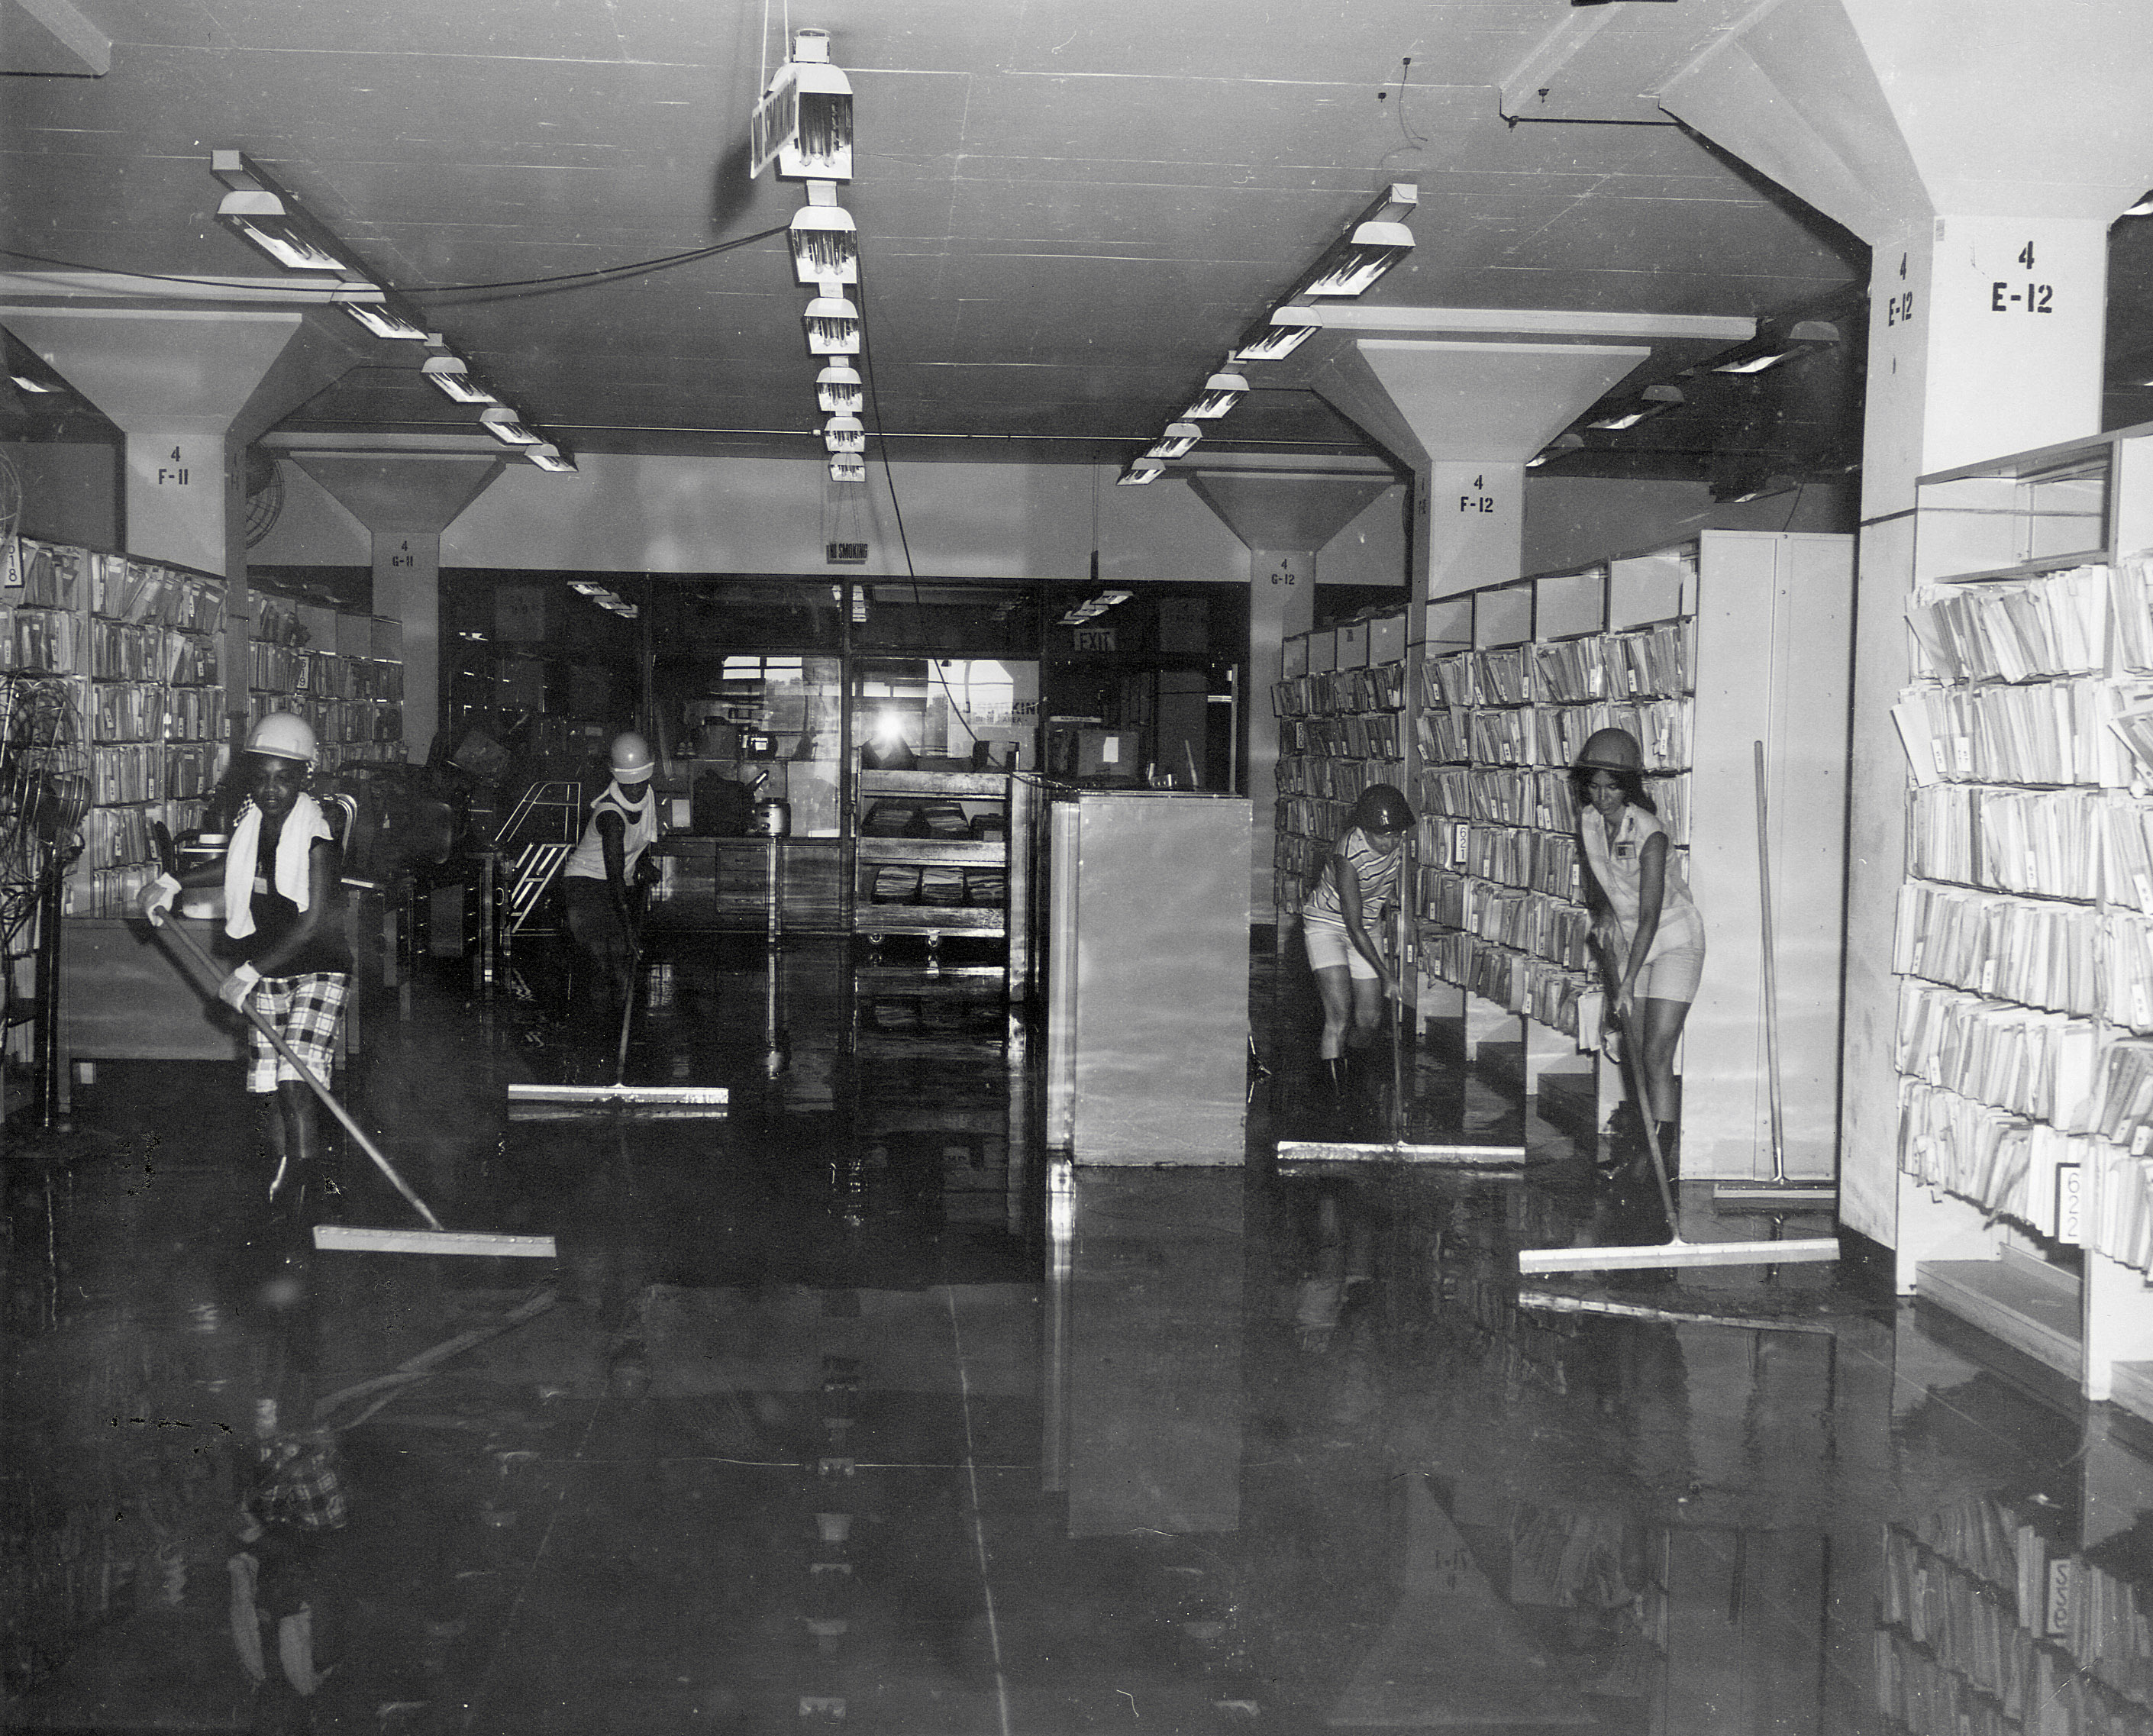 While on site, Waters witnessed the accidental damage of additional, previously dry records, when workers squeegeeing water on lower floors created waves that, in one single ten minute period, sent water into 9,000 bottom drawers of cabinets. (National Archives Record Group 64)